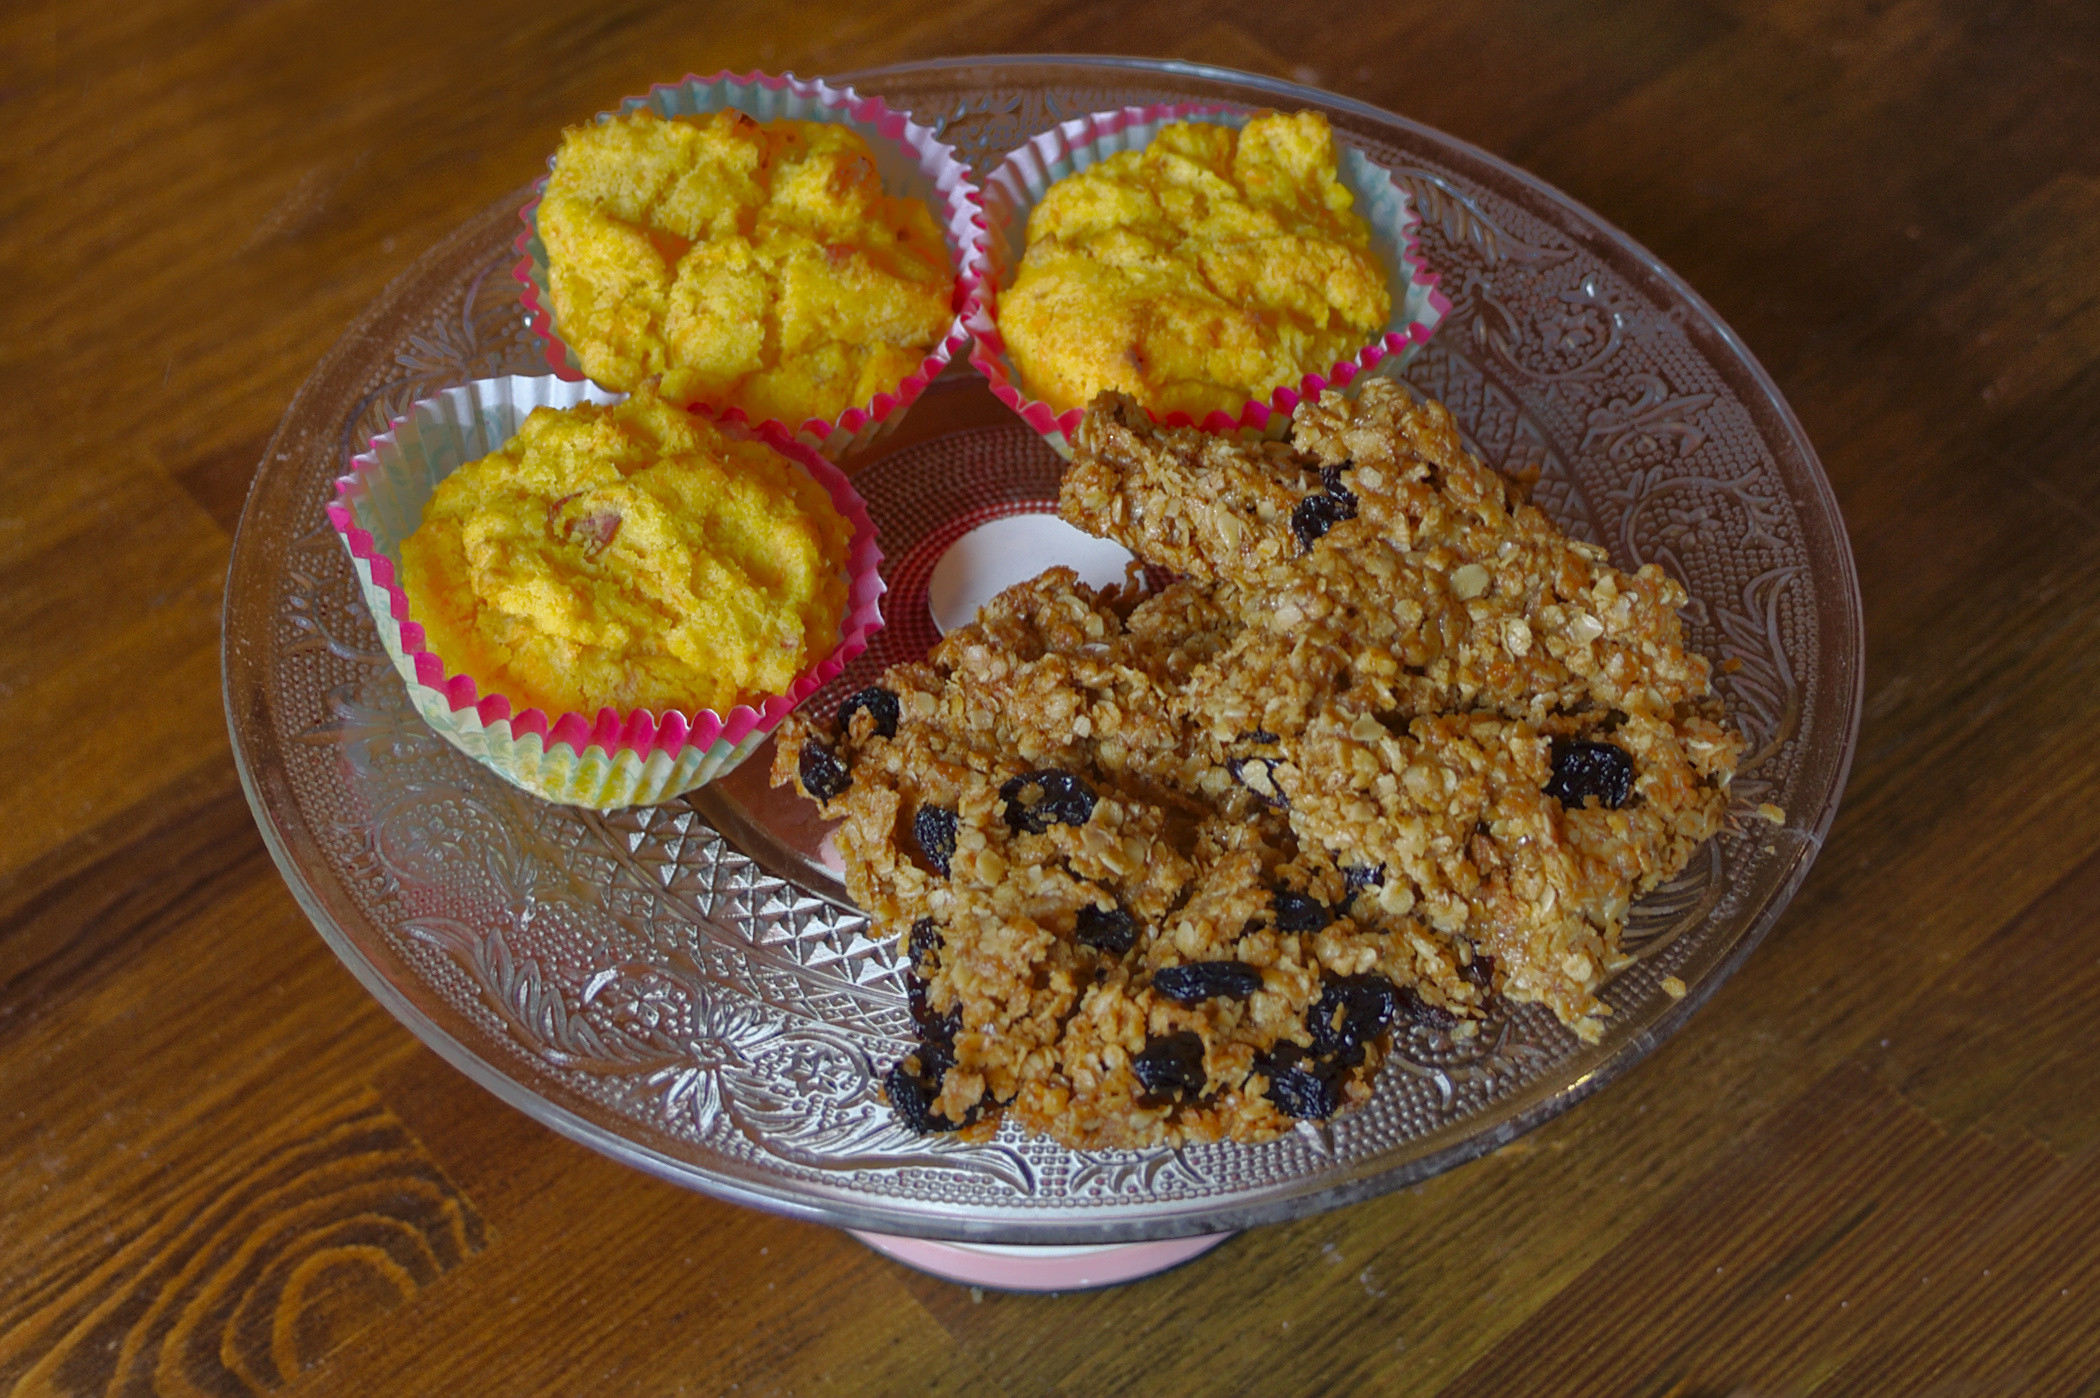 Dairy Free Egg Free Recipes  Gluten Dairy and Egg Free Carrot Cake Muffin Recipe